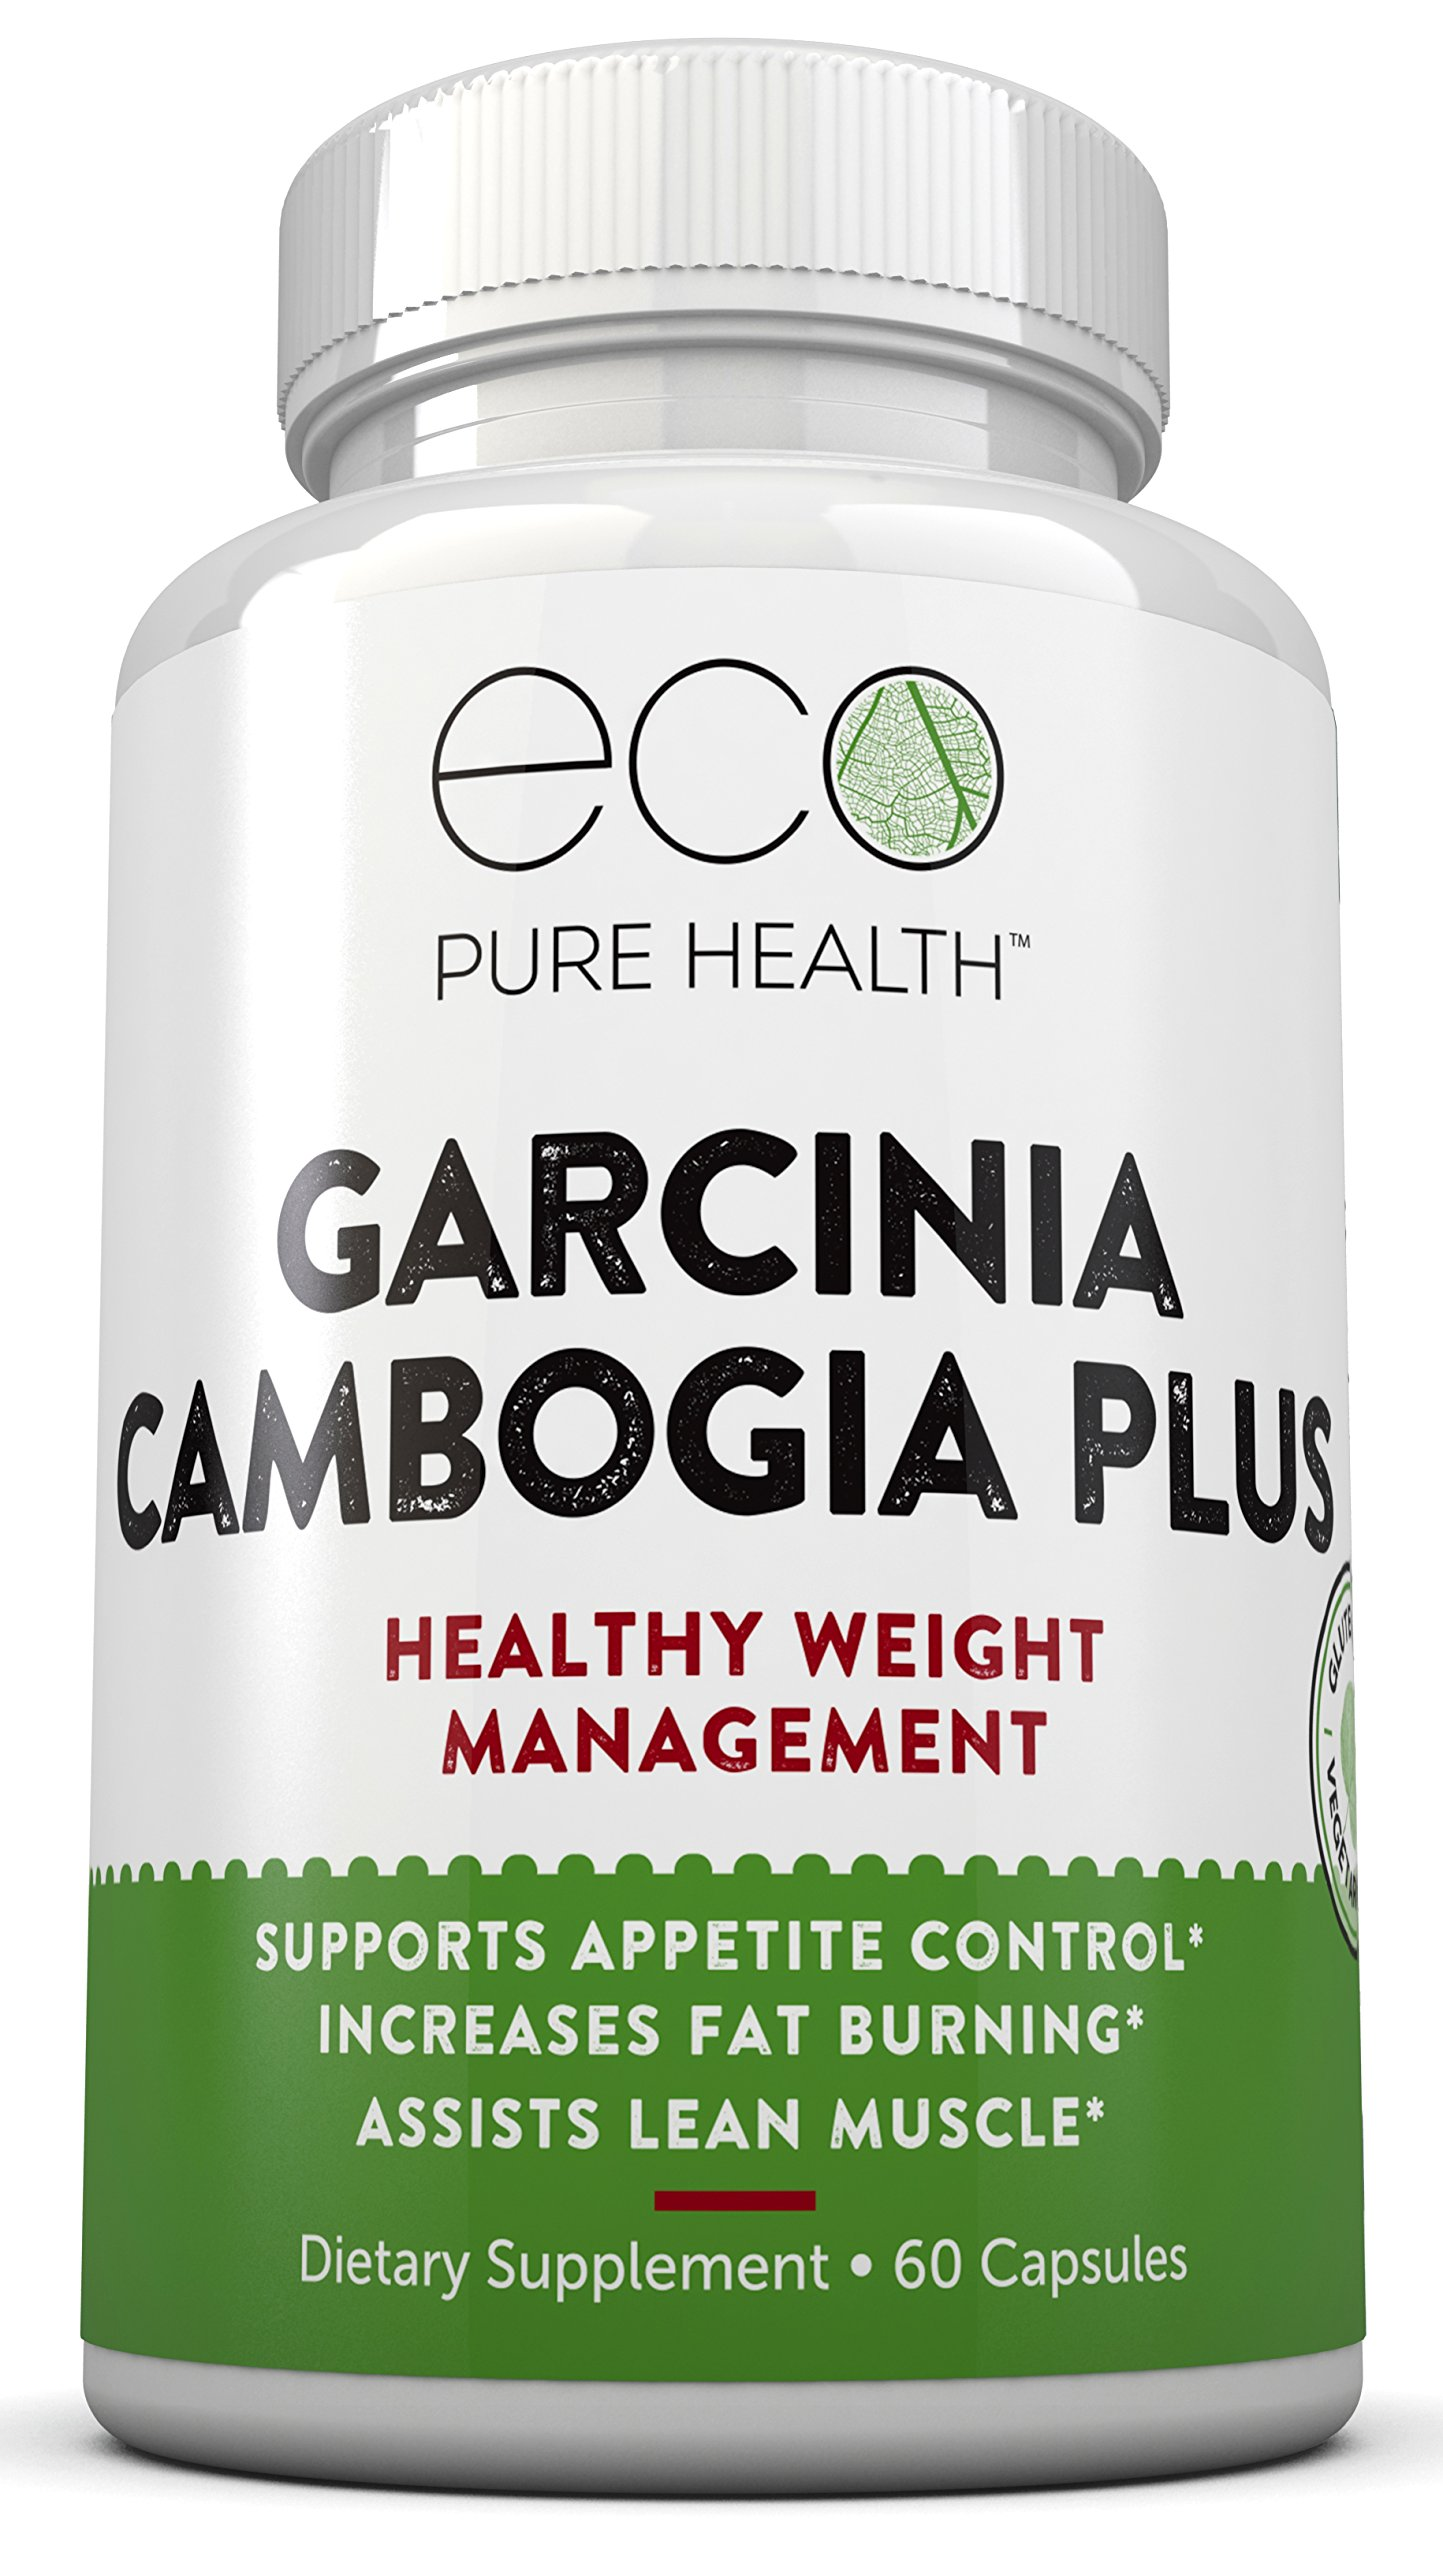 Garcinia Cambogia PLUS for Healthy Weight Management, Supports Appetite Control, Helps Increase Fat Burning, Assists Lean Muscles, 60 Capsules by Eco Pure Health